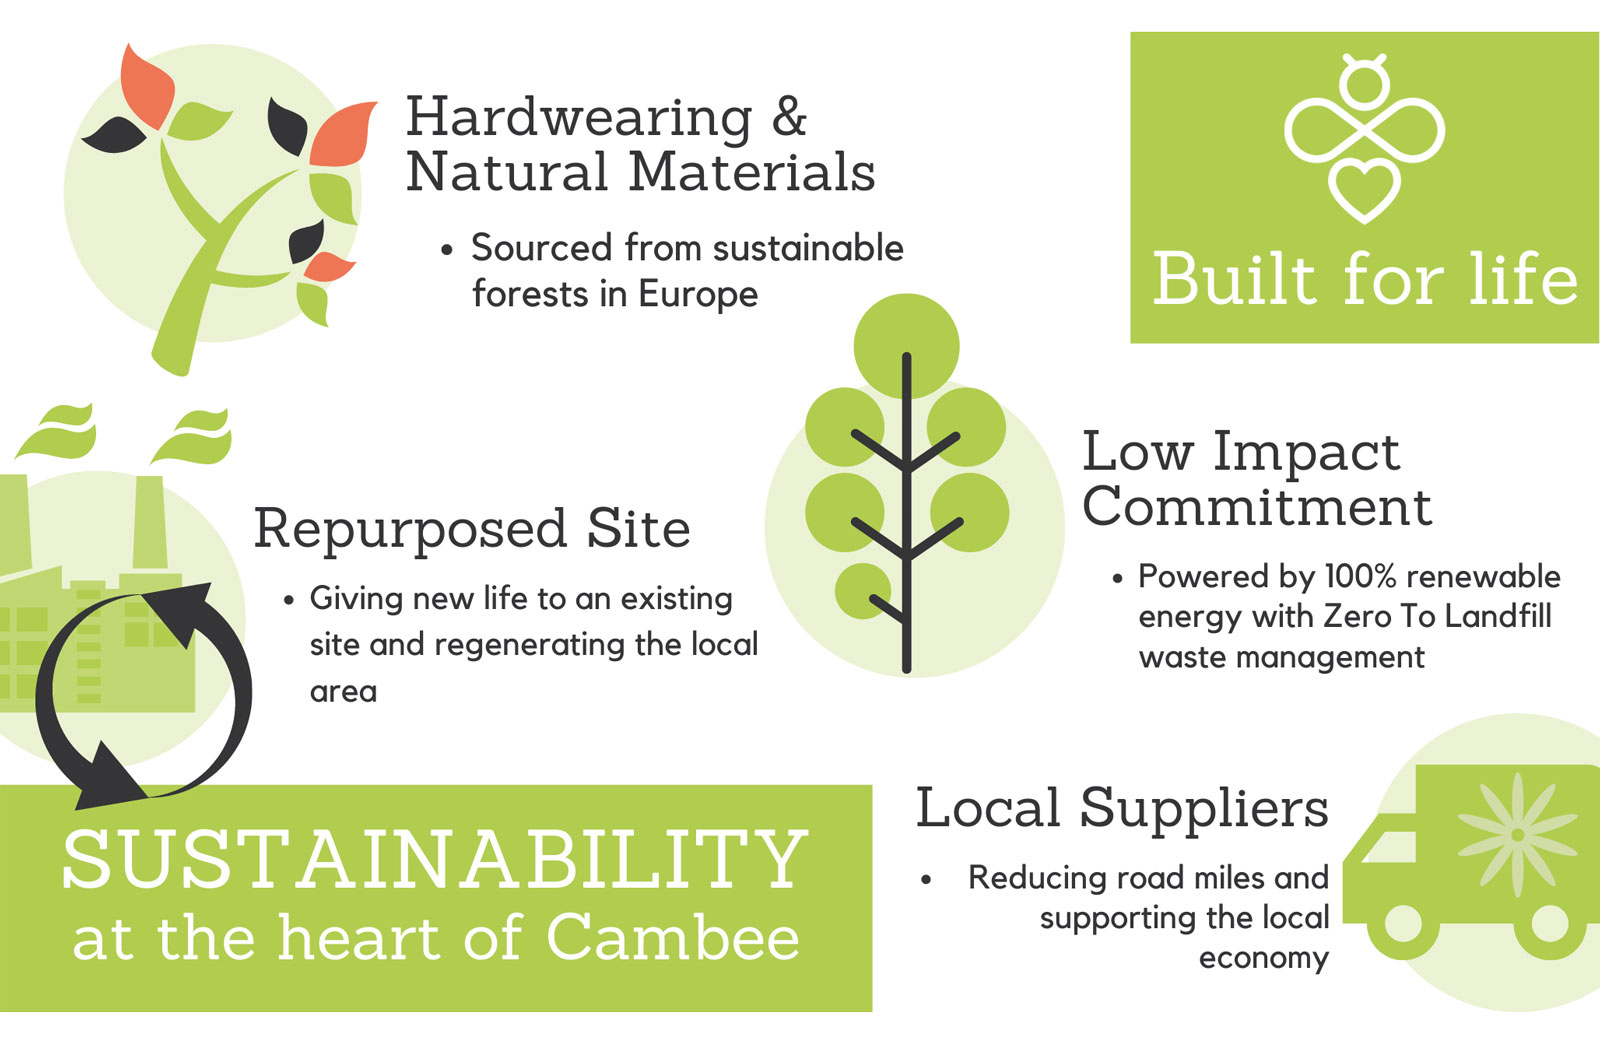 Sustainability statement of Cambee